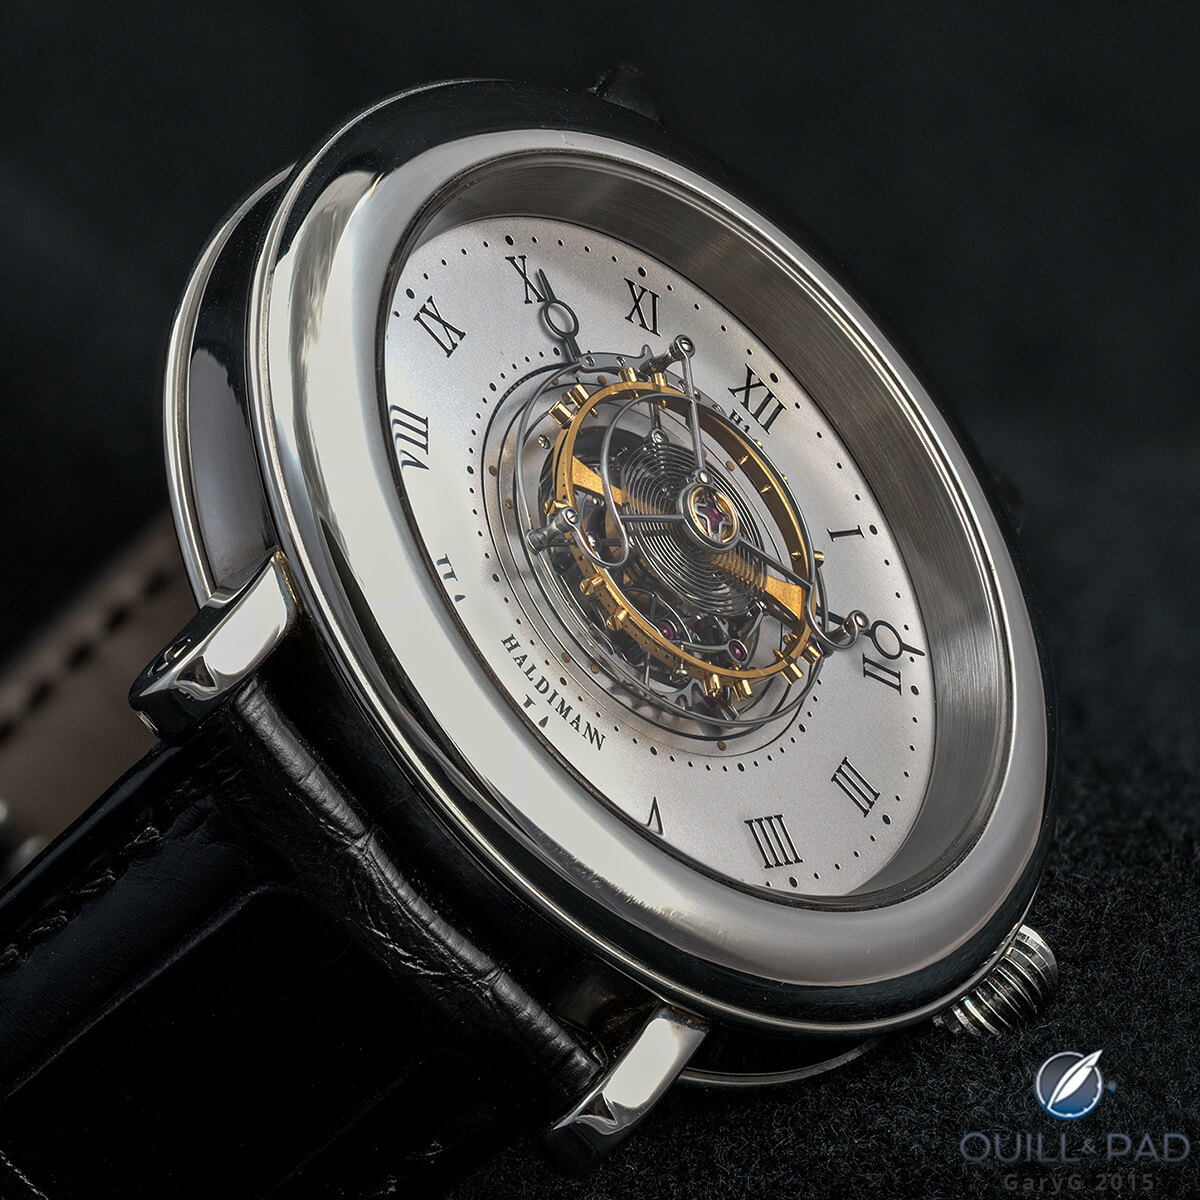 Haldimann H1 Flying Central Tourbillon emphasizing the tourbillon carriage